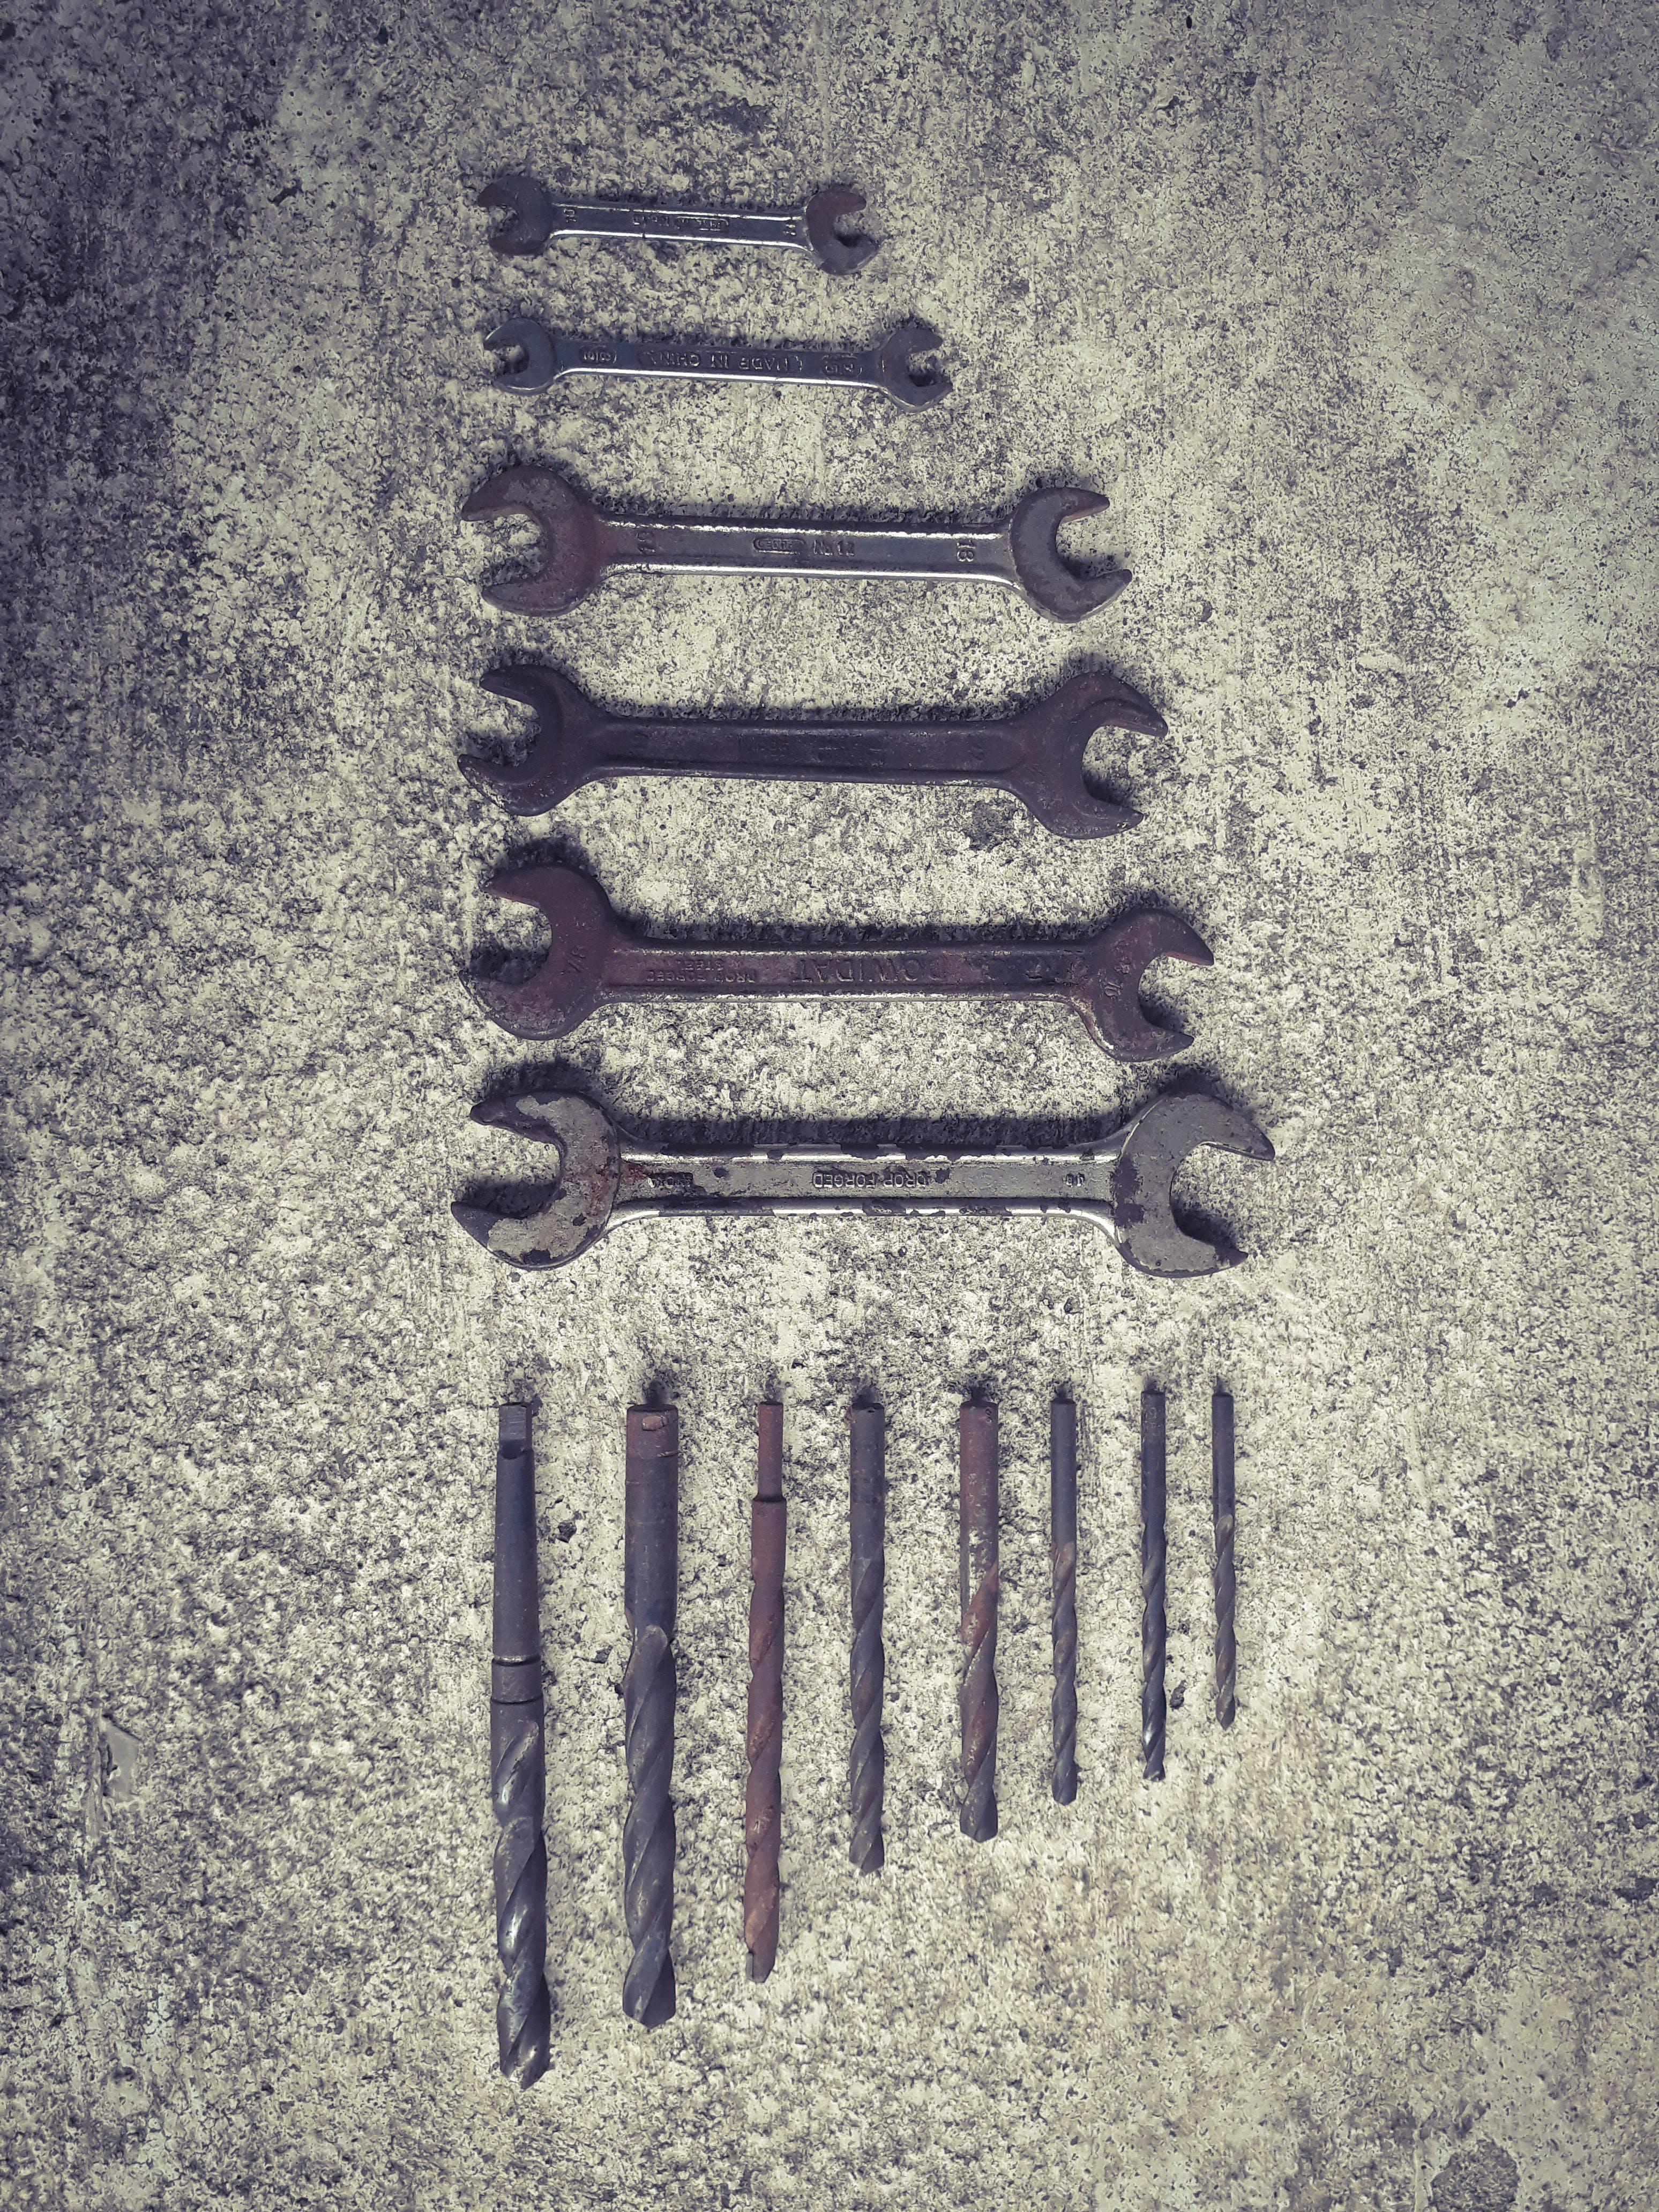 Free stock photo of ascent, drill bits, tools